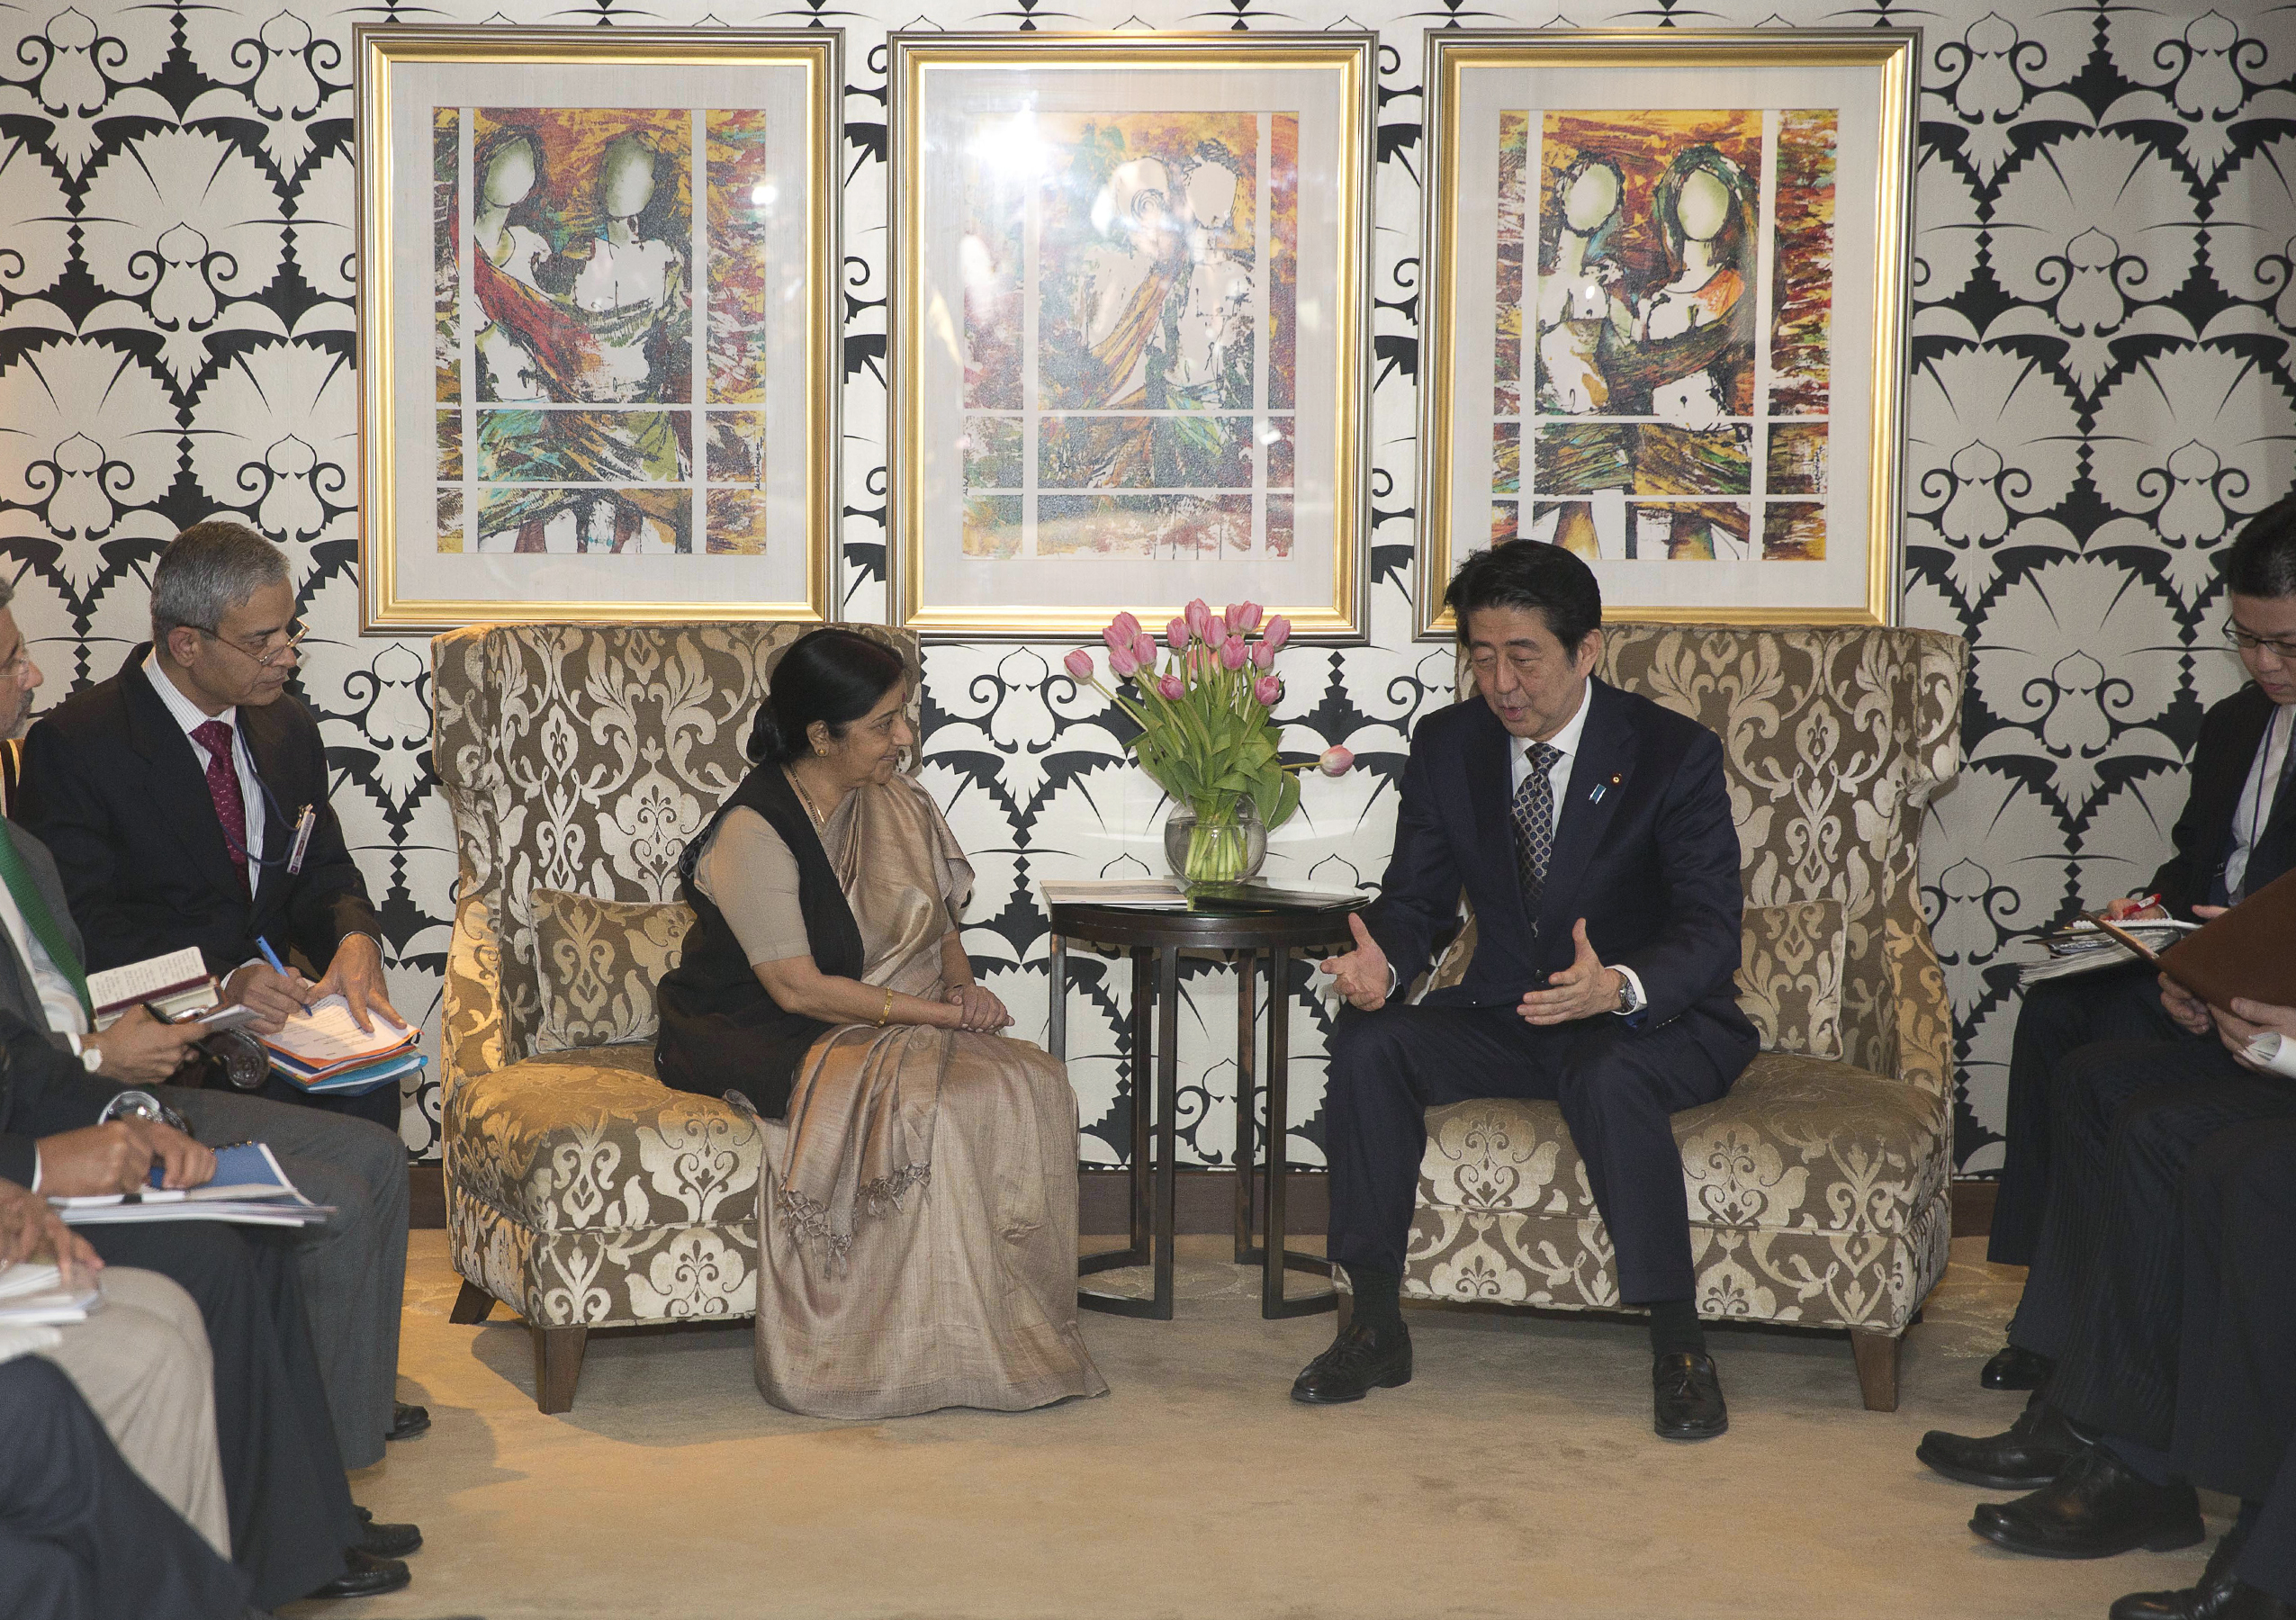 Japanese Prime Minister Shinzo Abe, center right, talks with Indian Foreign Minister Sushma Swaraj, center left, in New Delhi, India Friday, Dec. 11, 2015. Photo: AP